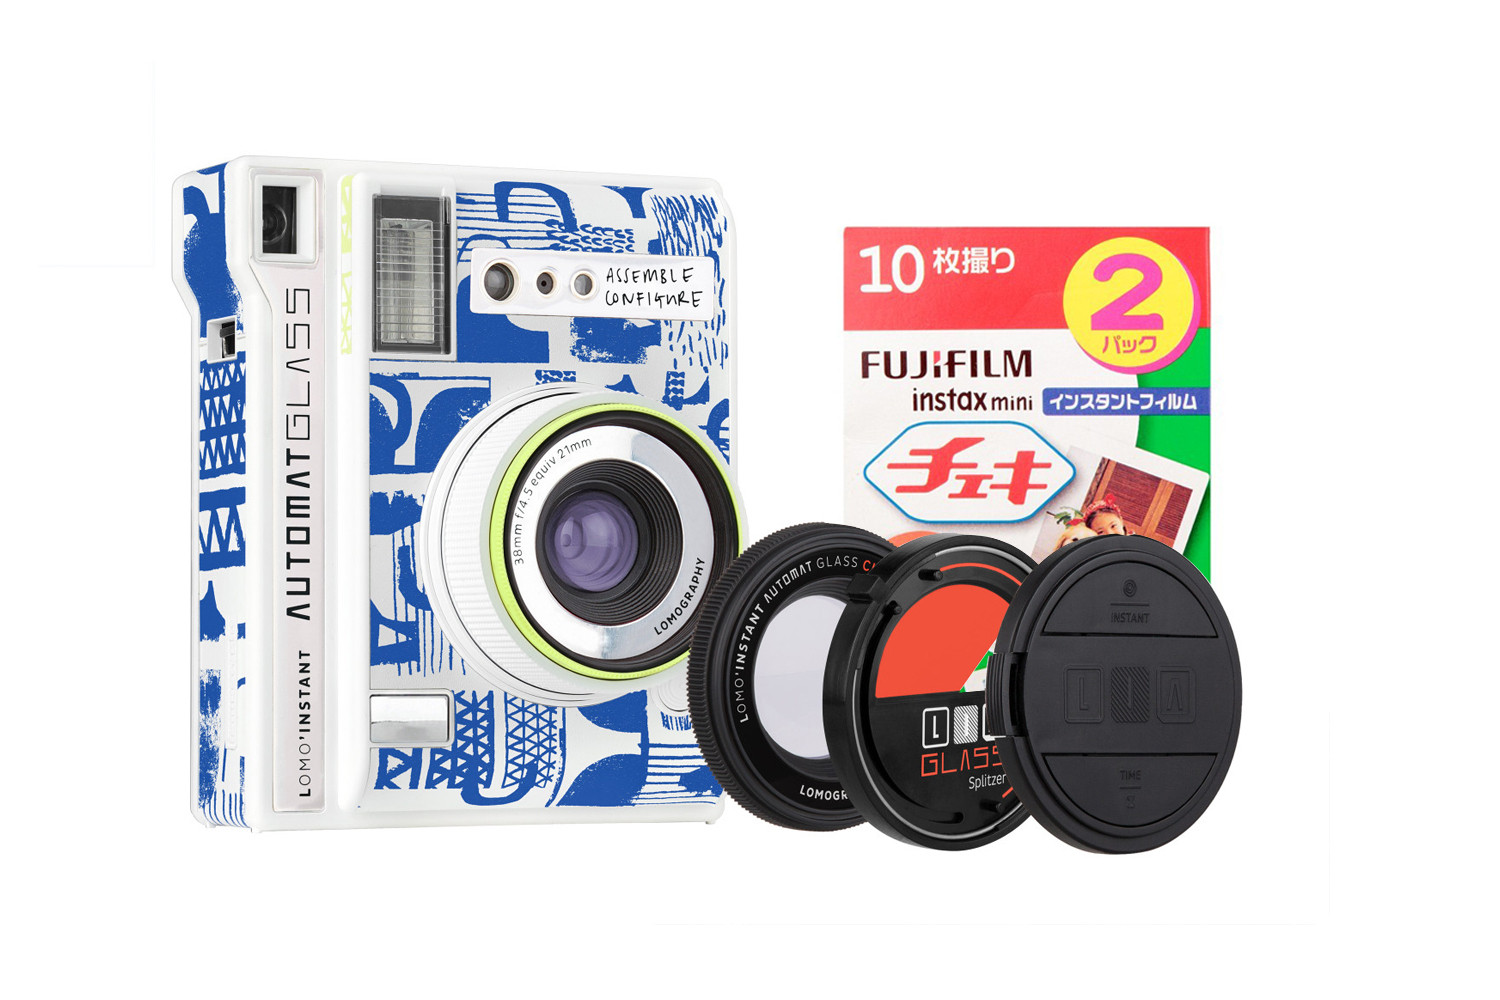 Lomo'Instant Automat Glass (Assemble Configure Edition) + Fujifilm Instax Film Double Pack Bundle